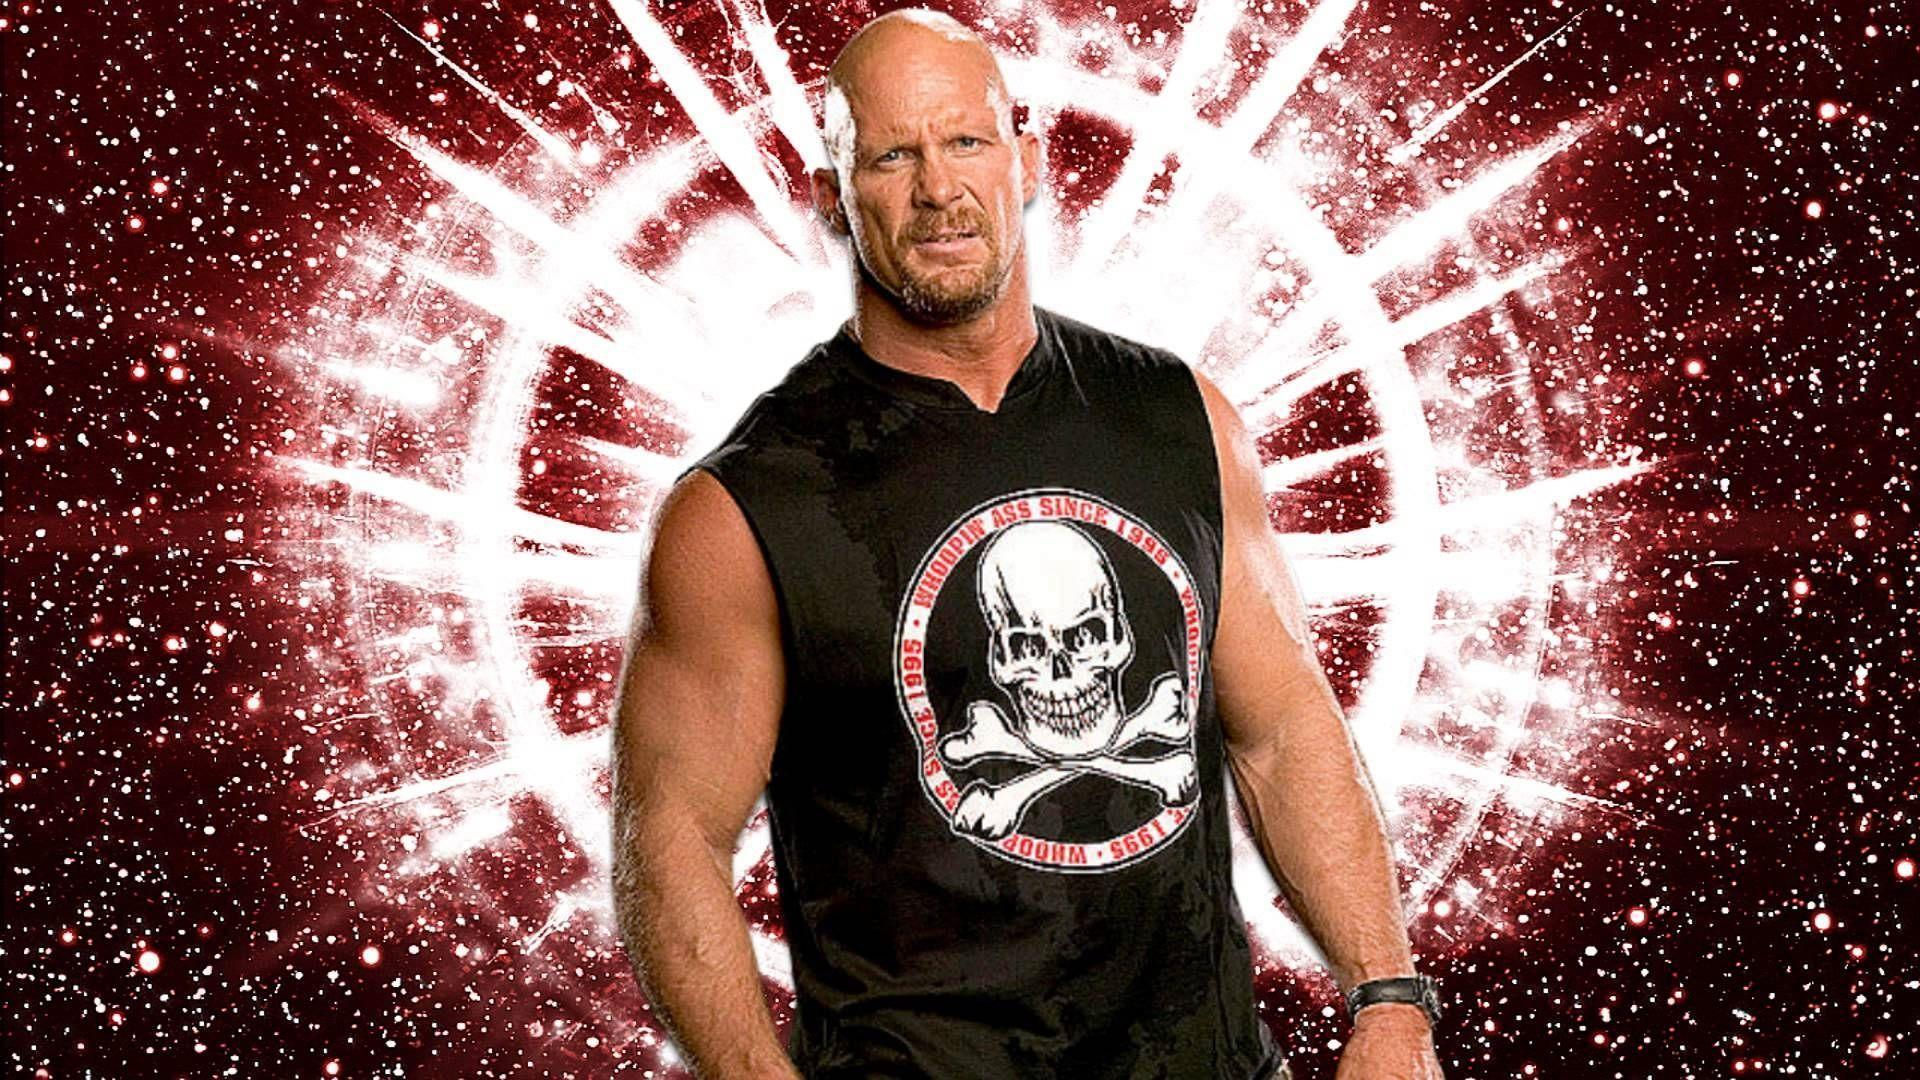 Free Download Stone Cold Steve Austin Wallpapers 1920x1080 For